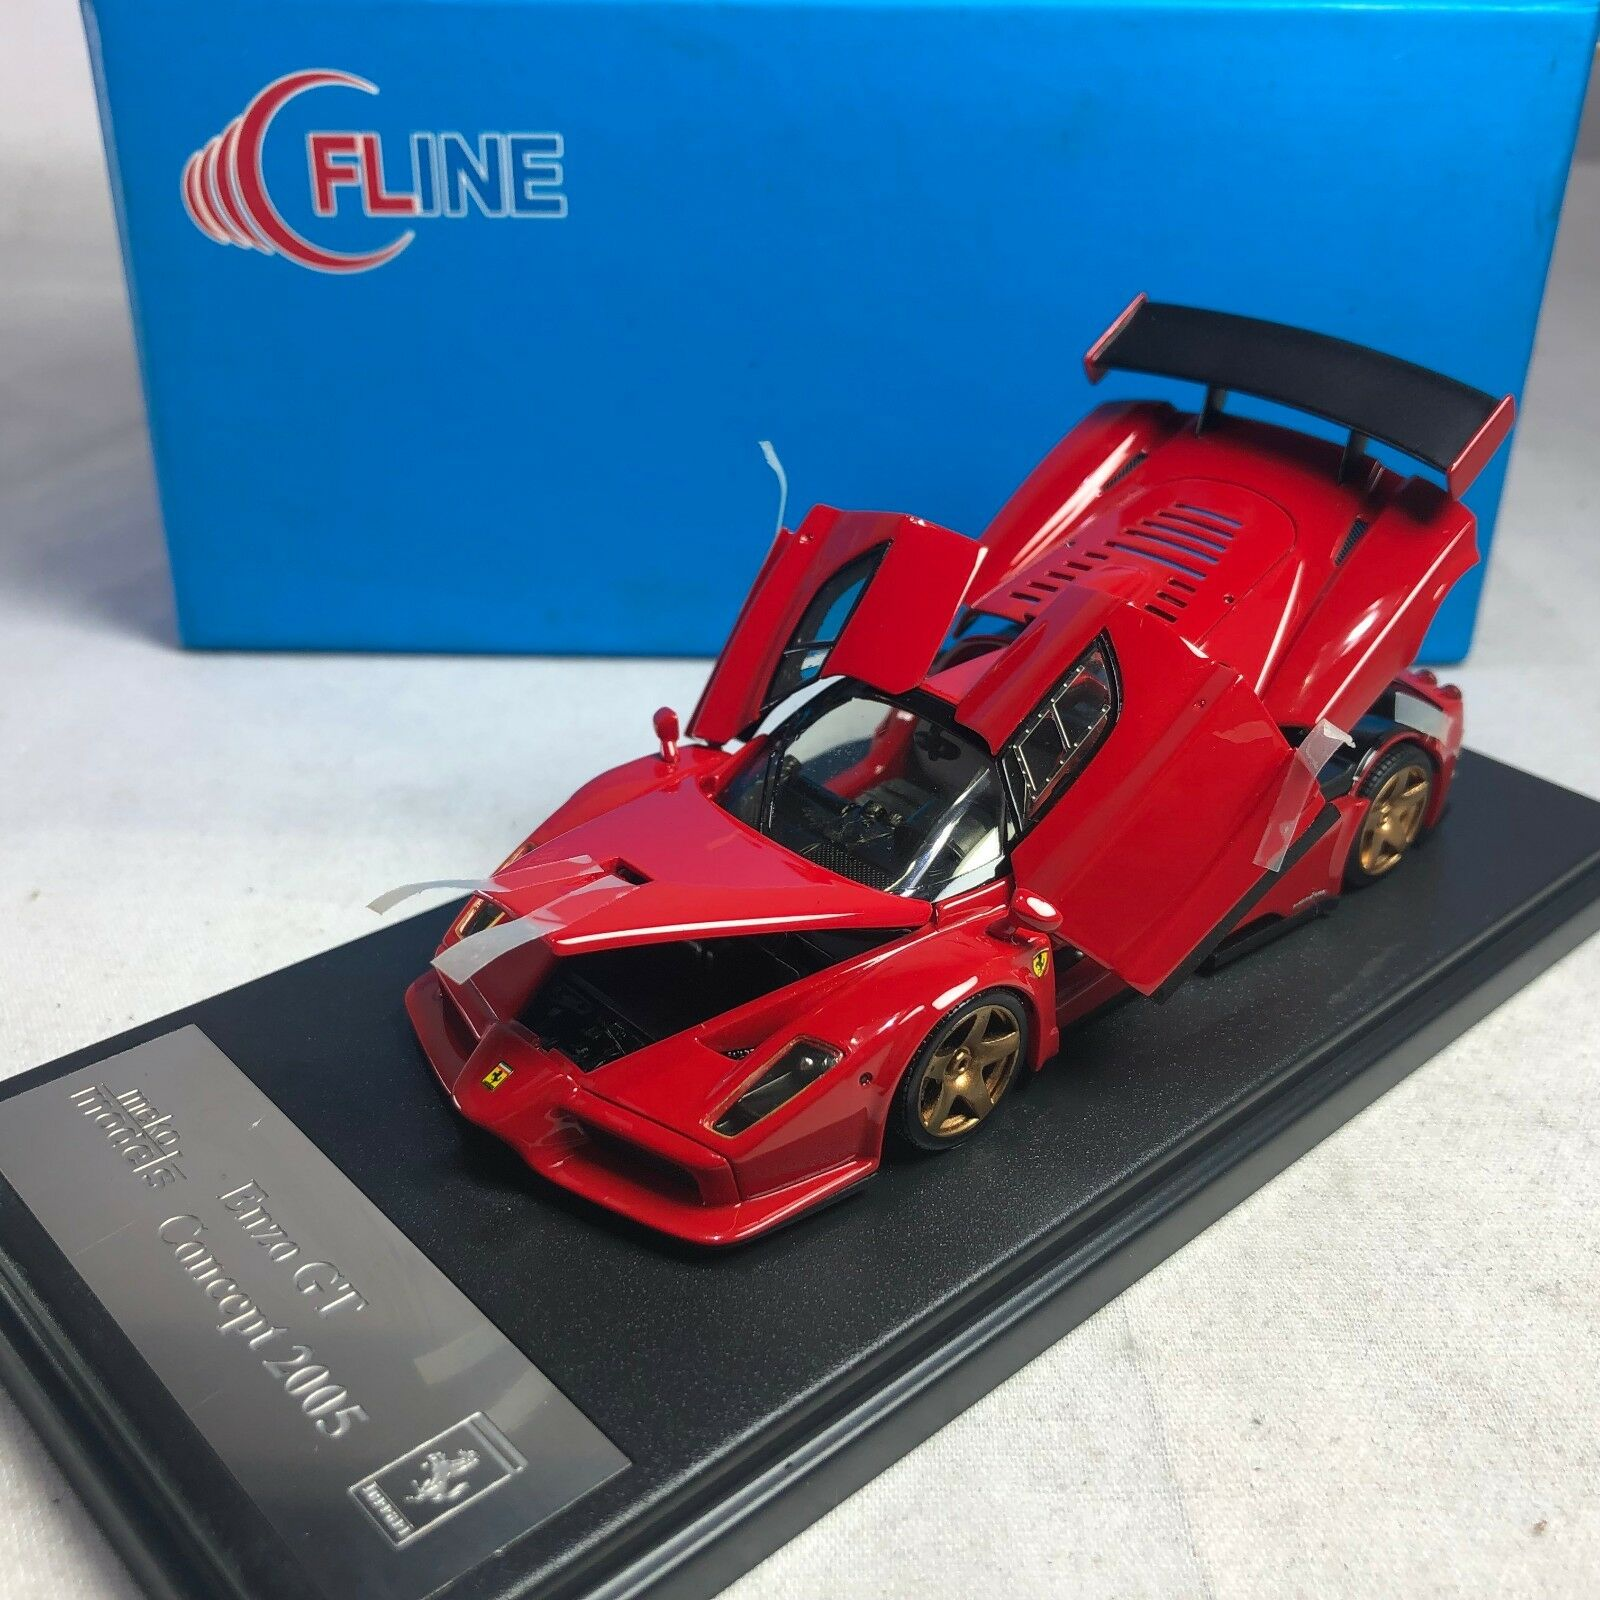 1 43 Scale Meko Fline Ferrari Enzo GT Concept Red wth gold Wheels Open & Close